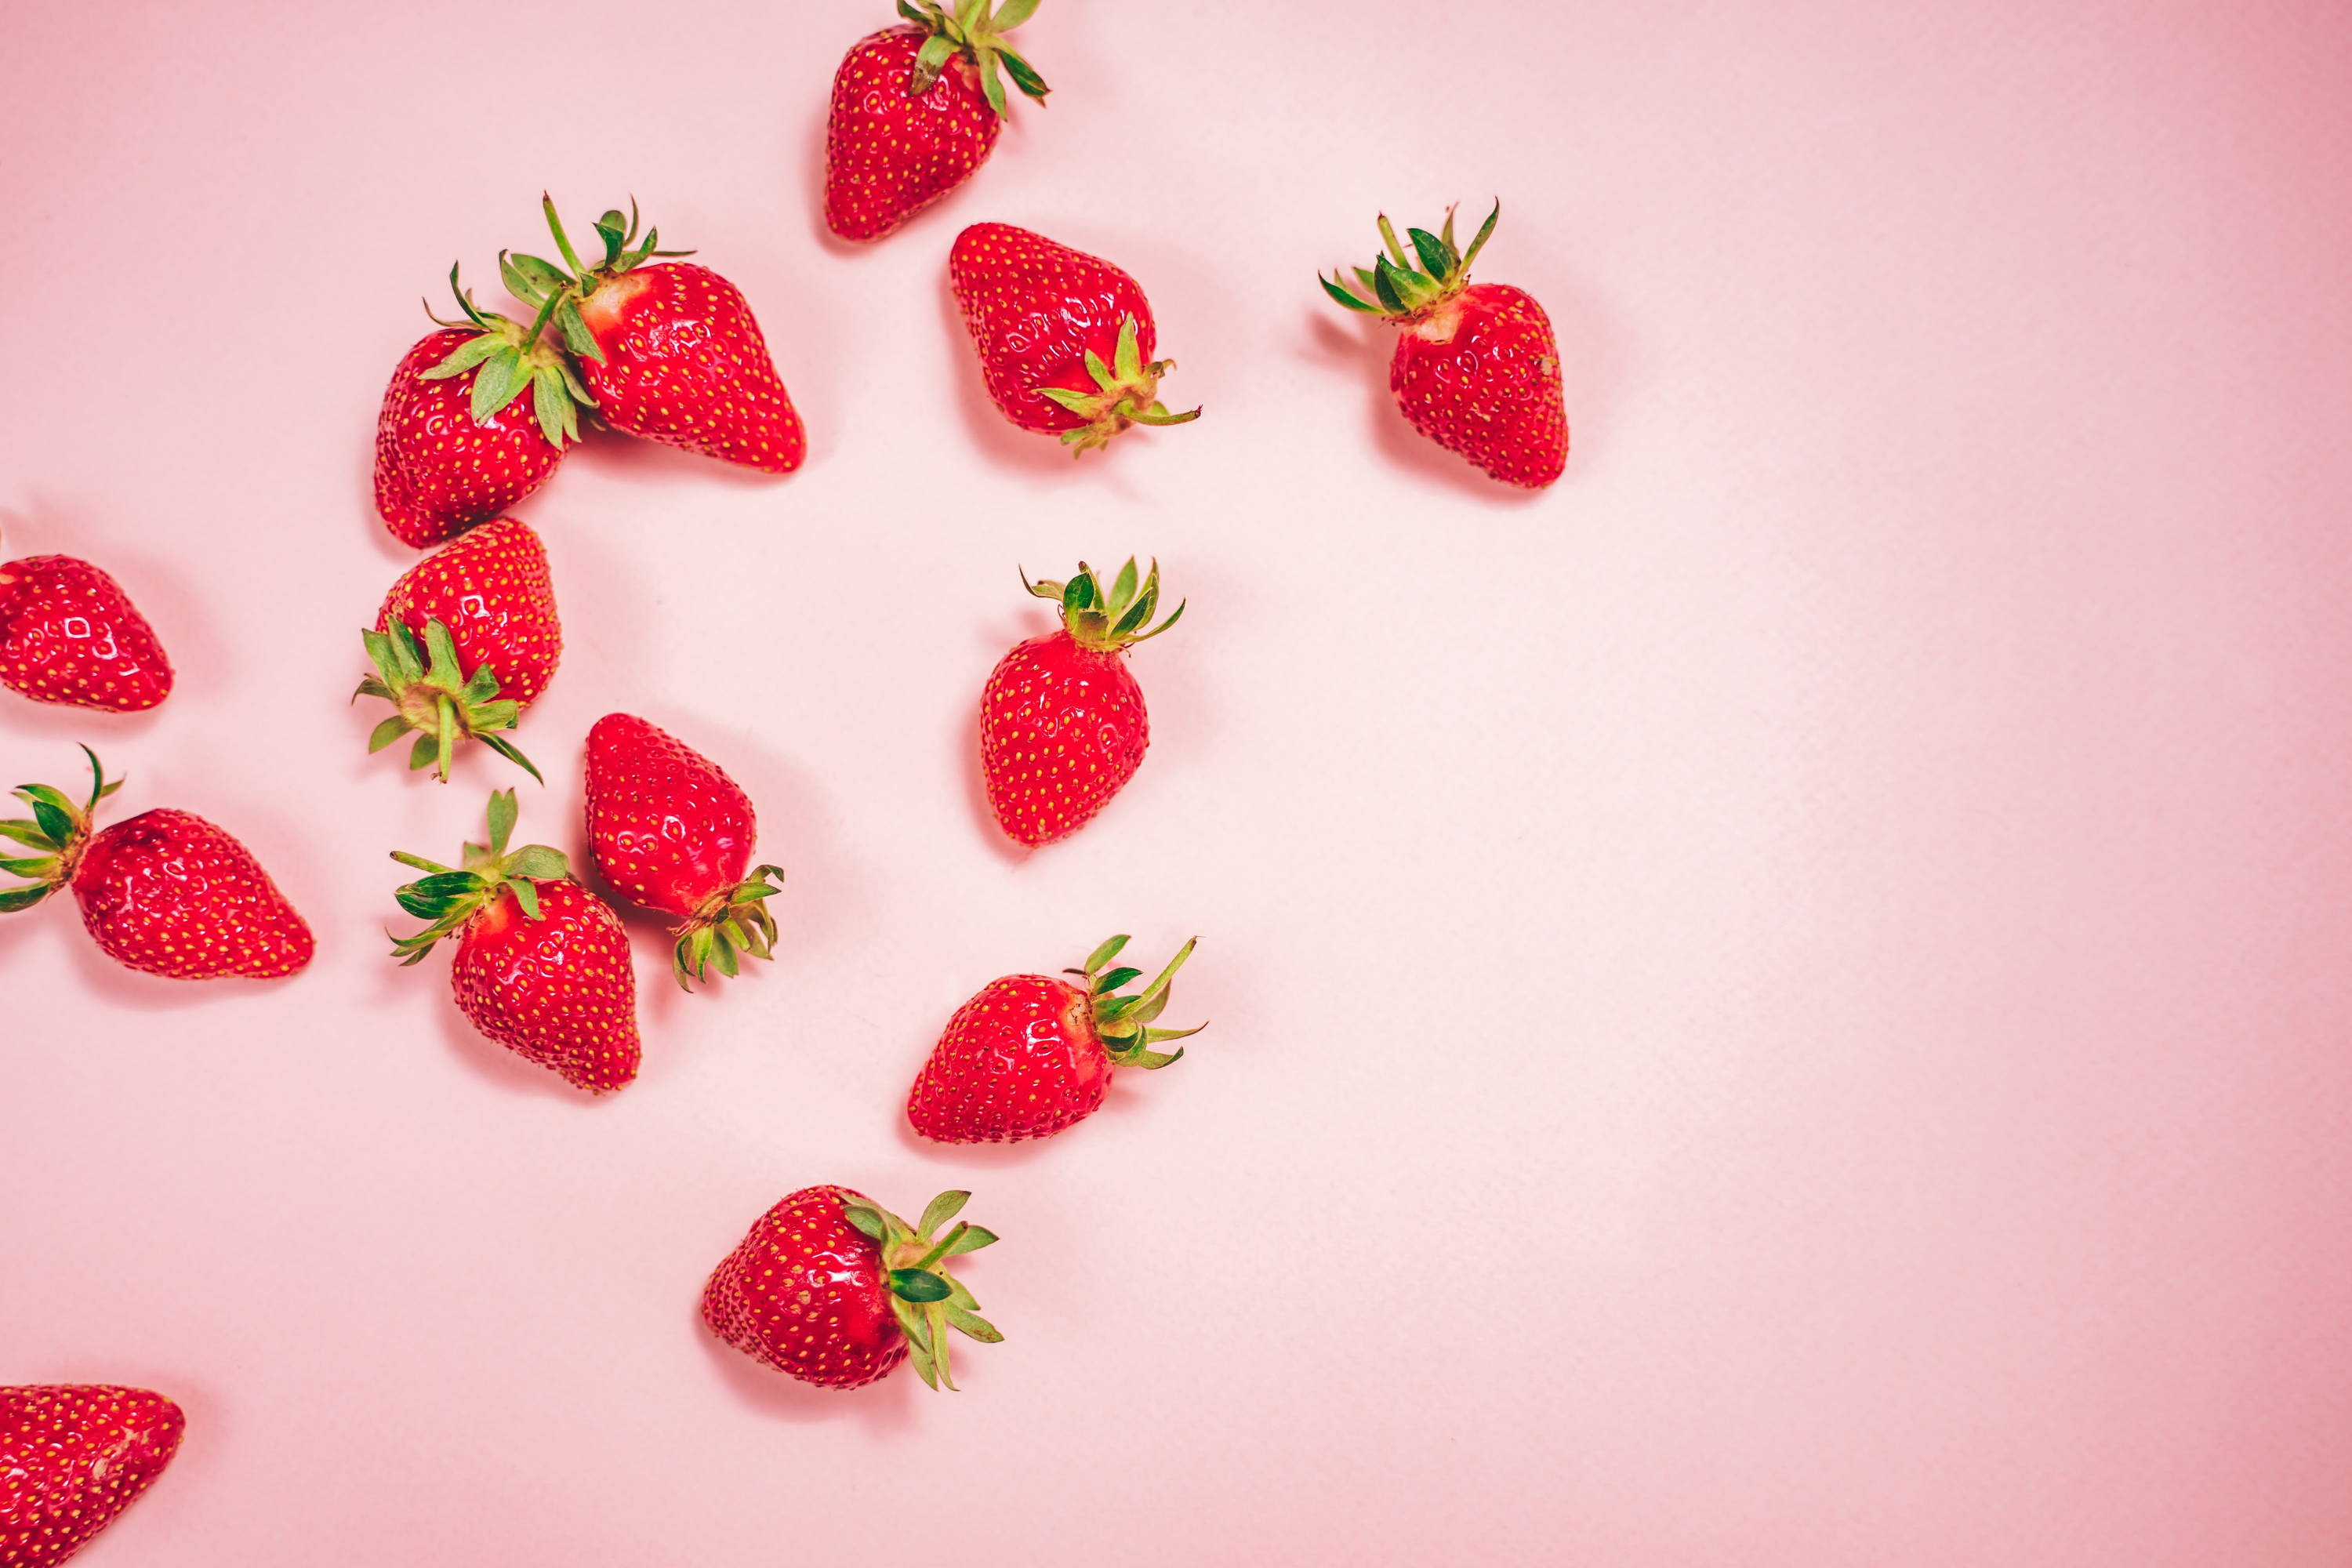 Strawberries on pink background